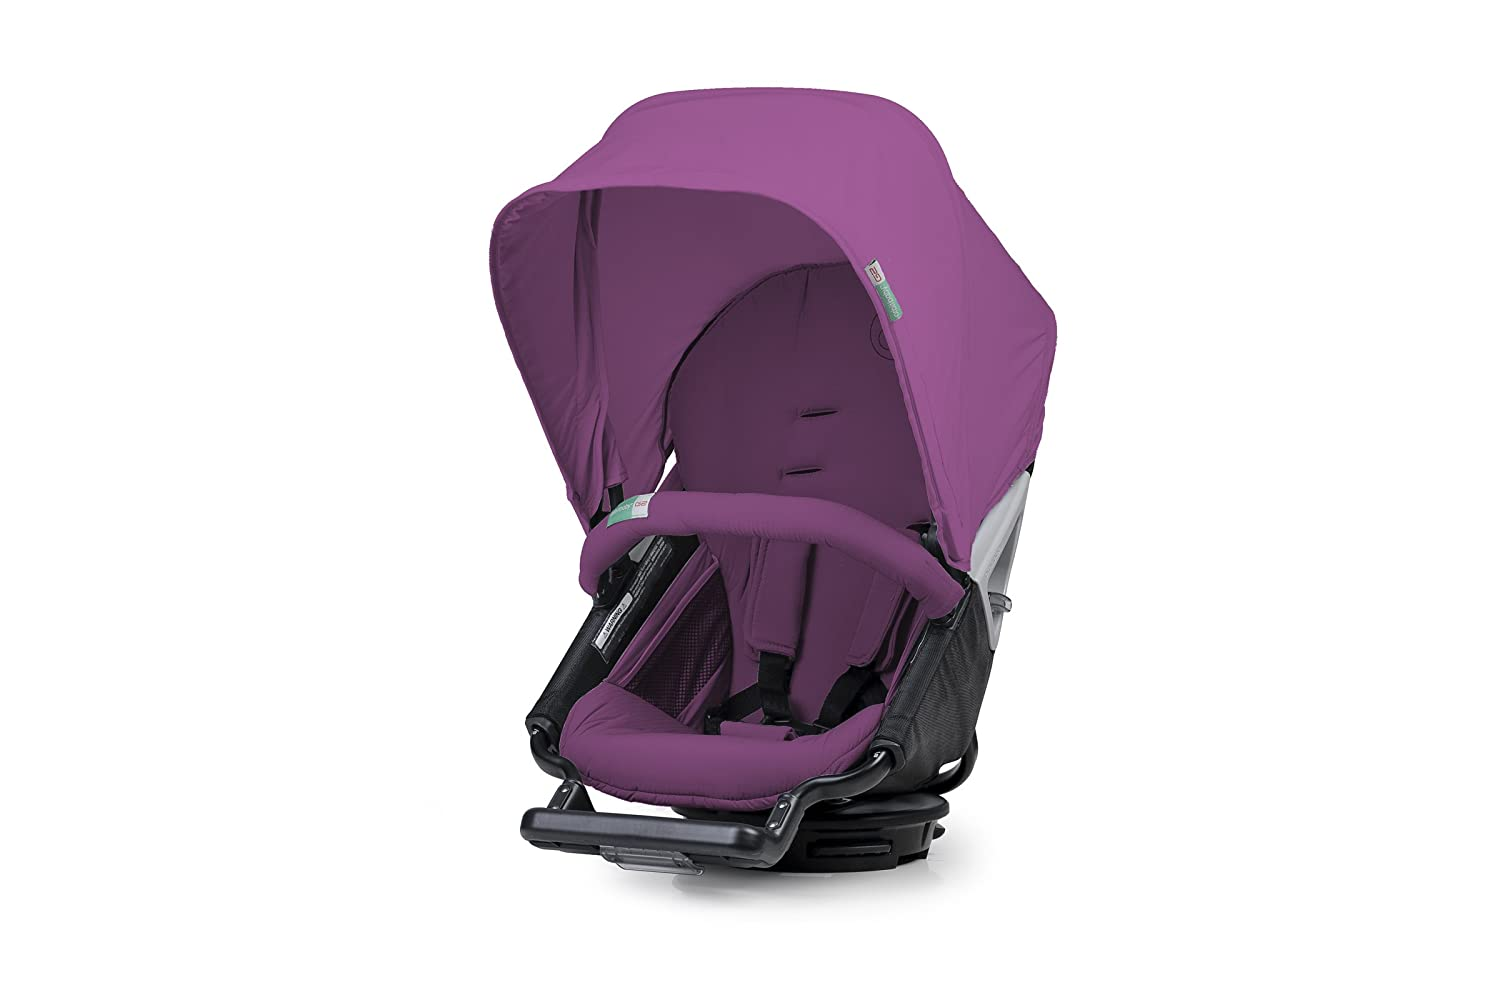 Amazon.com : Orbit Baby Color Pack for Stroller Seat G2, Grape (Discontinued by Manufacturer) : Infant Car Seat Stroller Travel Systems : Baby